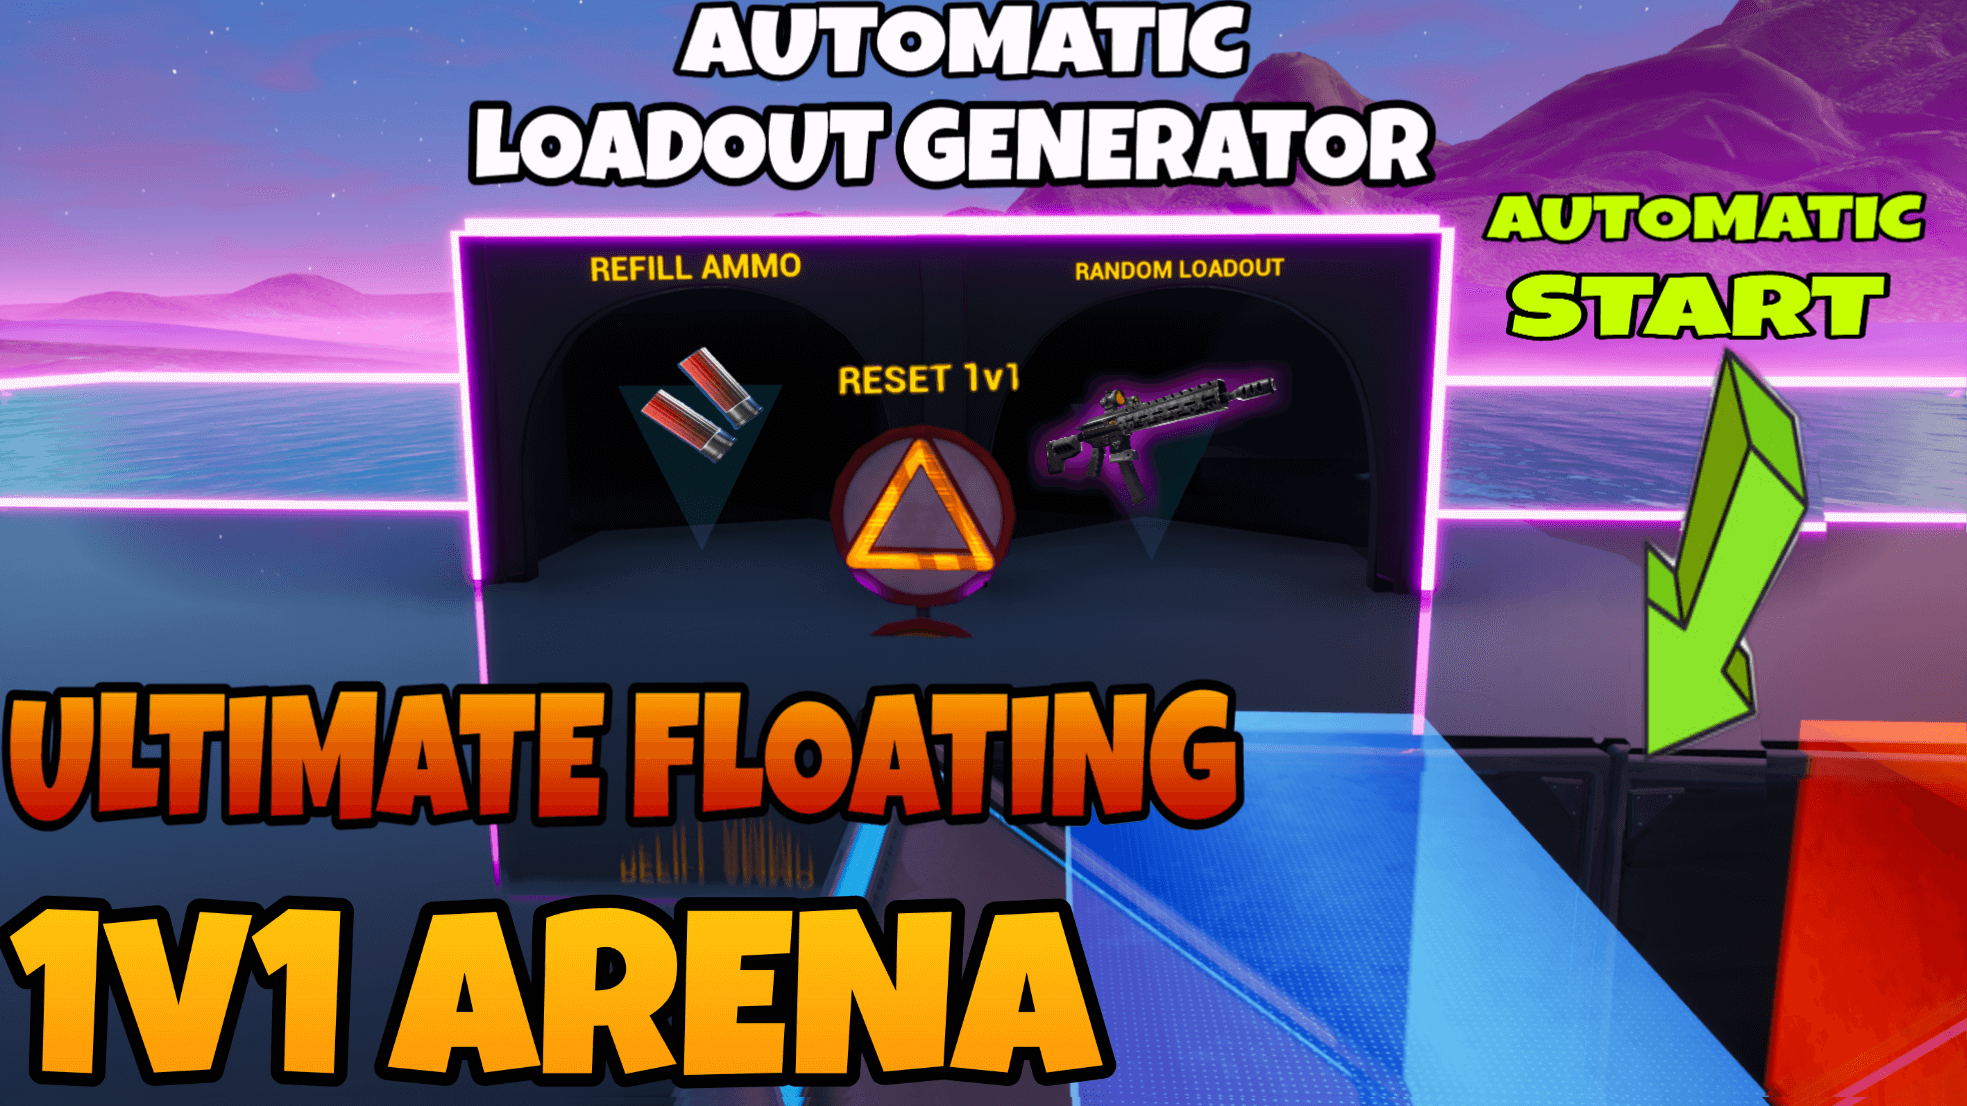 ULTIMATE FLOATING 1V1 ARENA